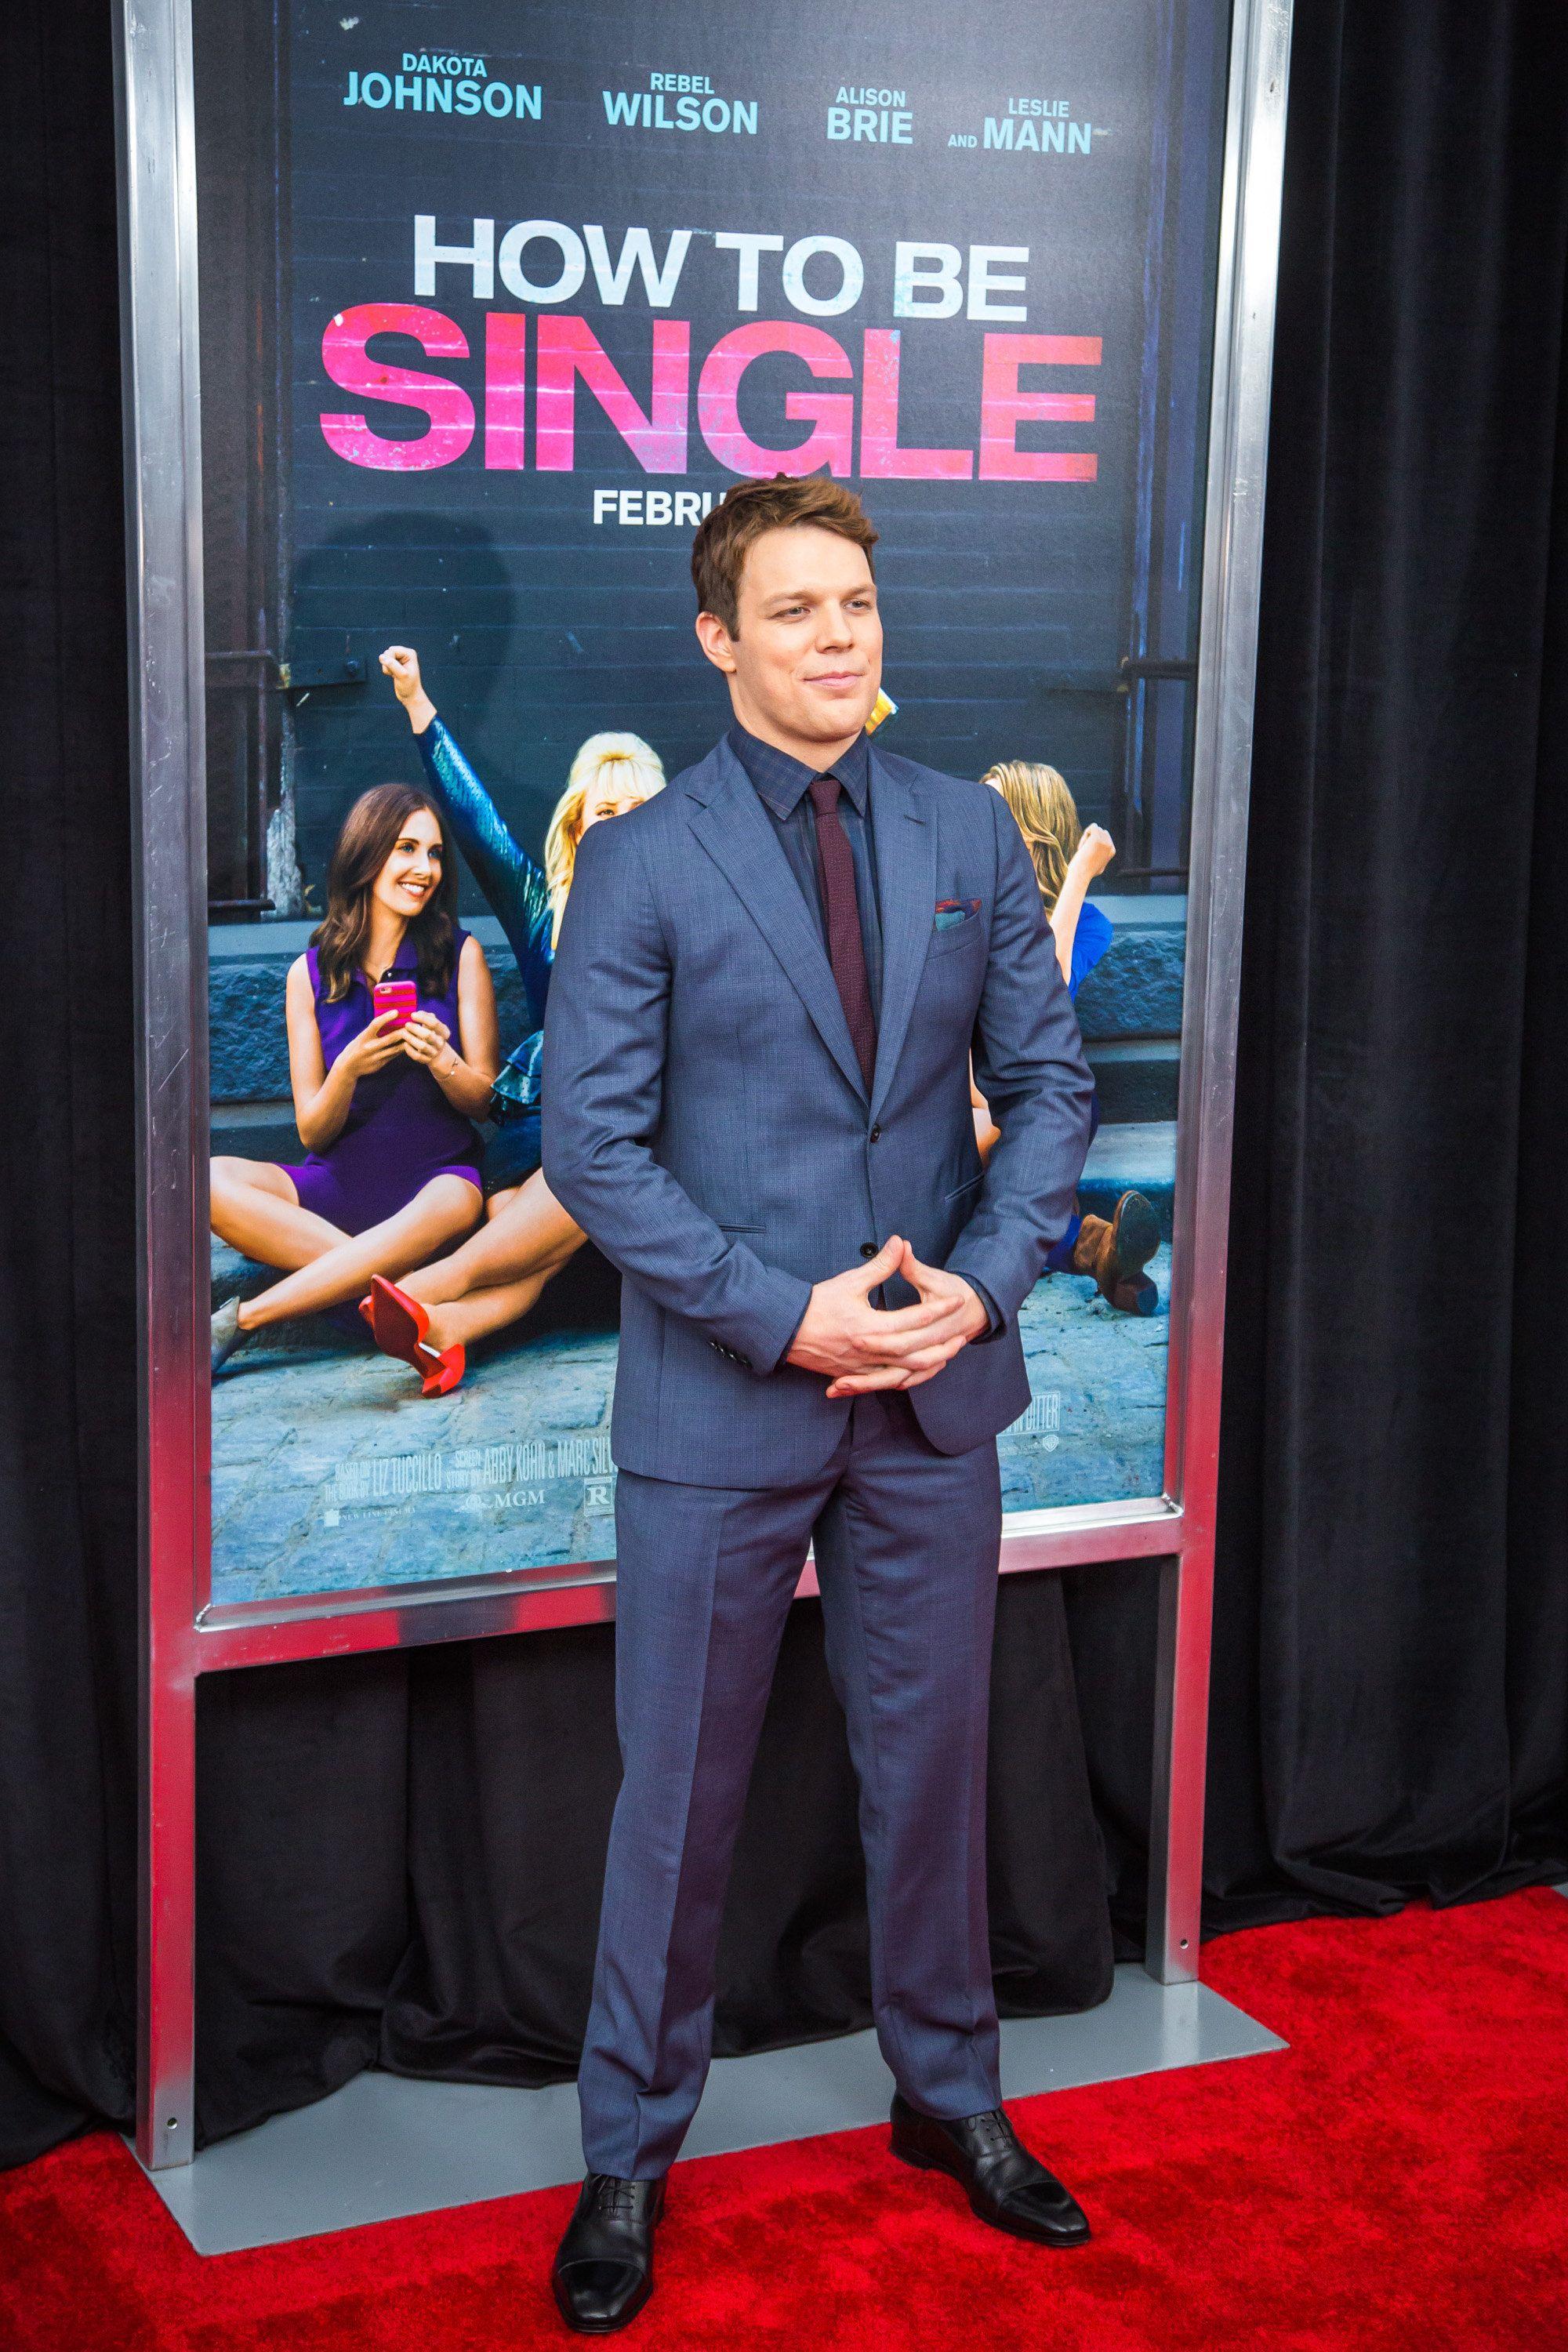 Jake lacy how to be single premiere at the nyu skirball center jake lacy how to be single premiere at the nyu skirball center in ccuart Images